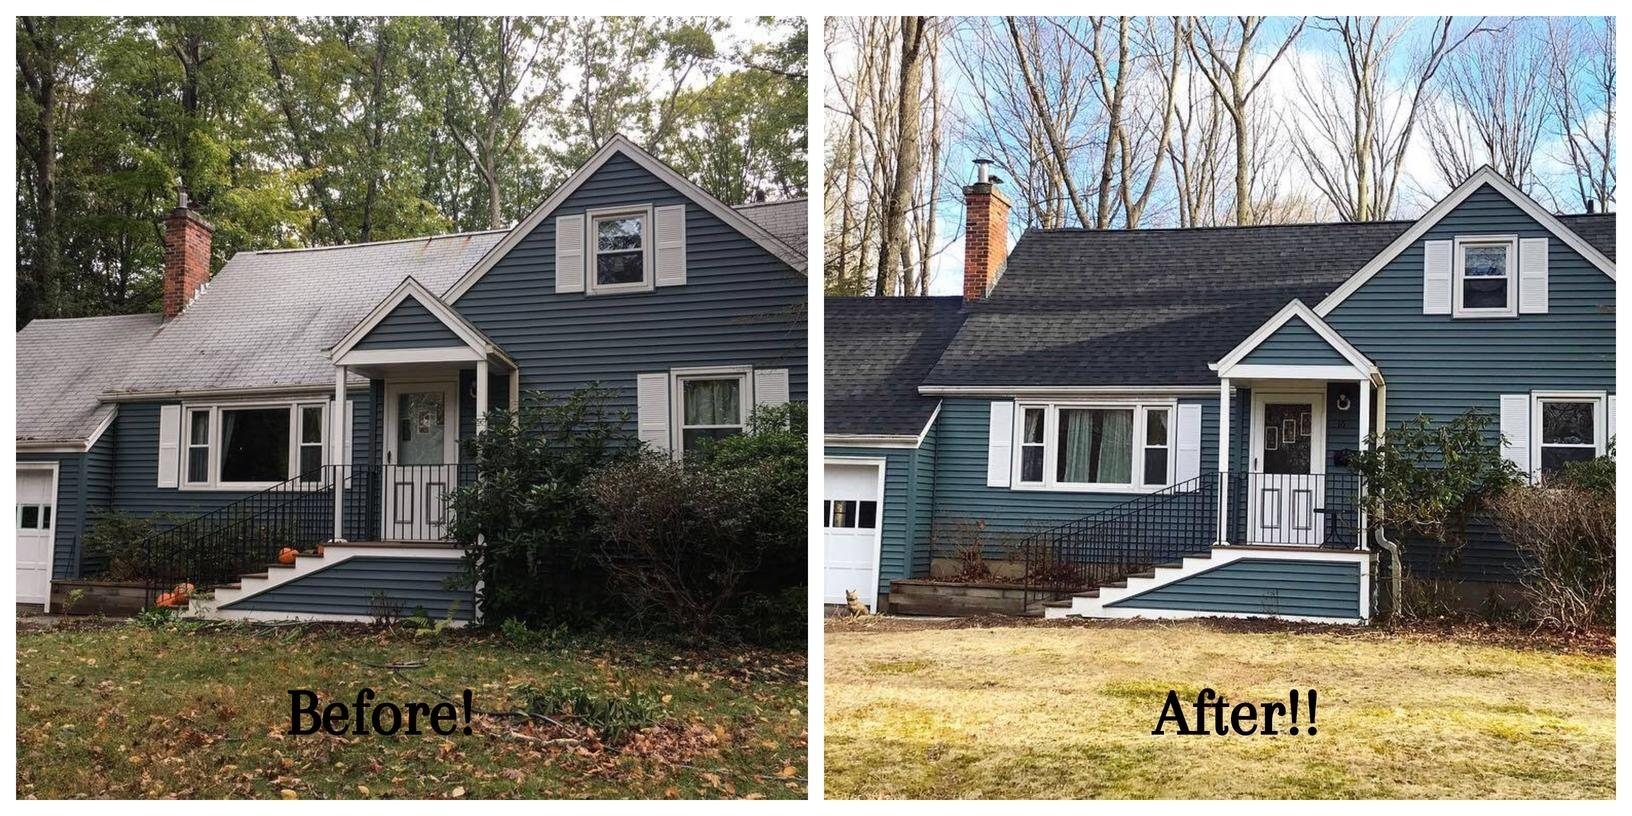 Before and After of a Roof Installed